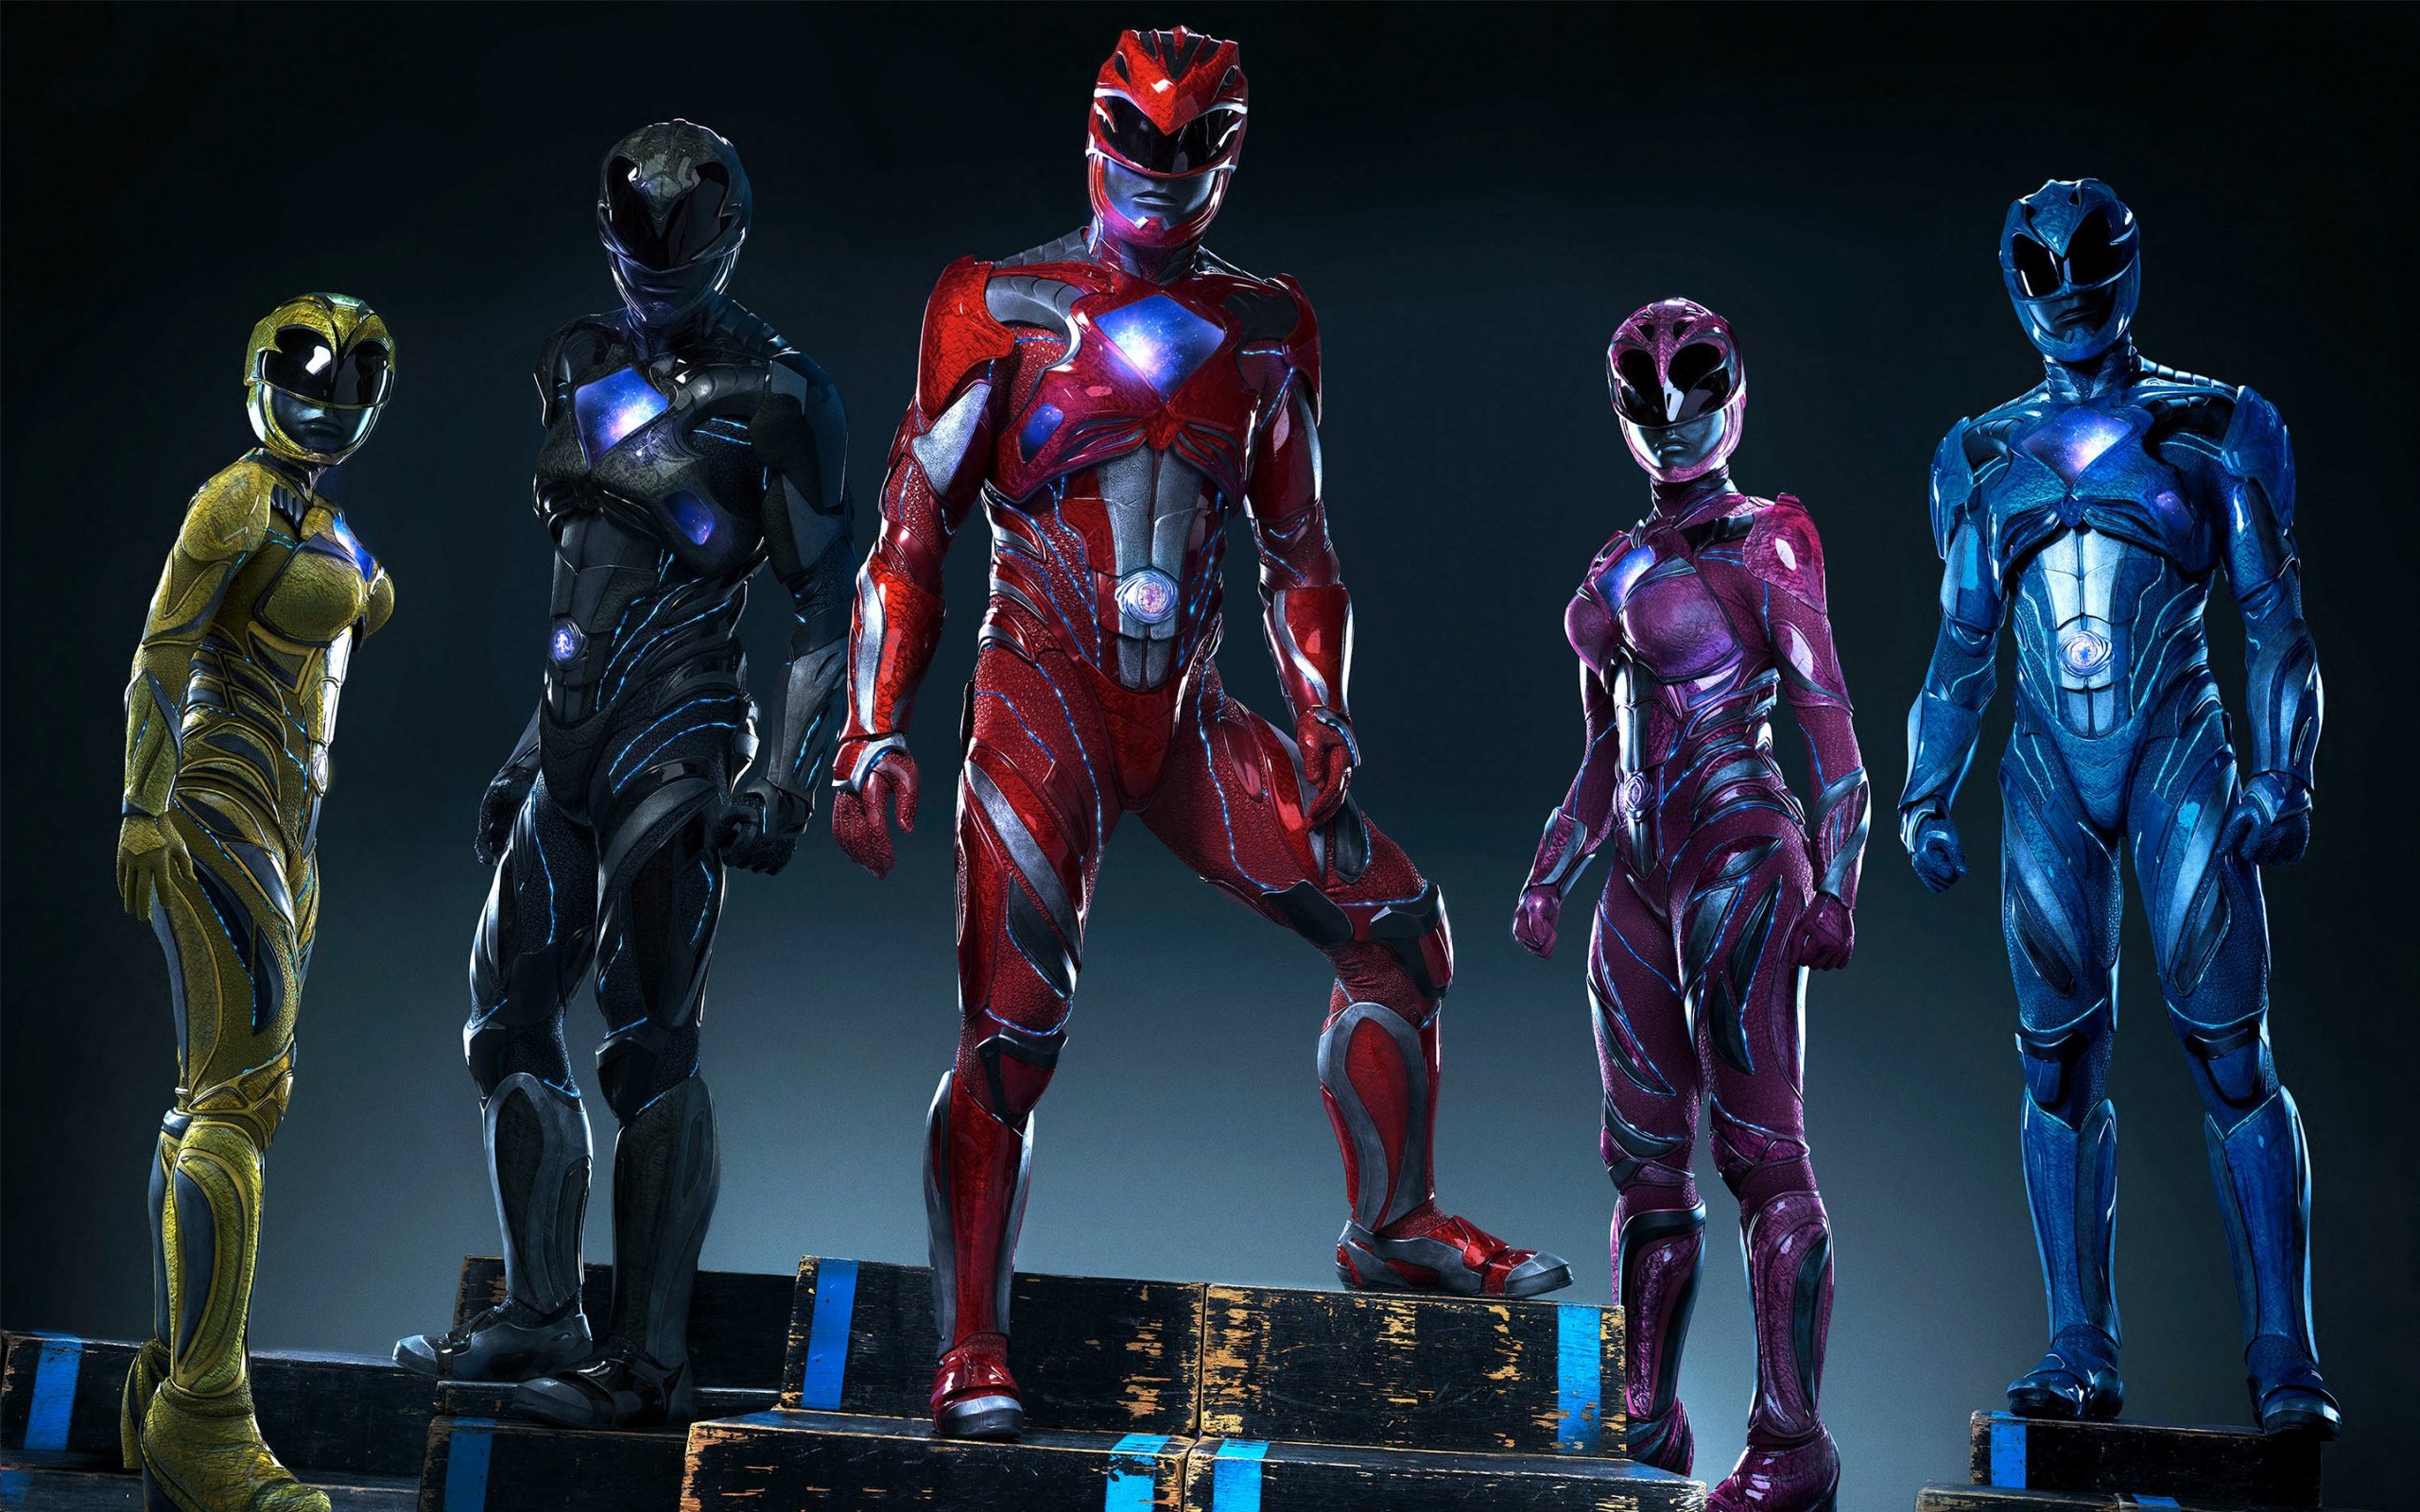 mighty morphin power rangers wallpapers in jpg format for